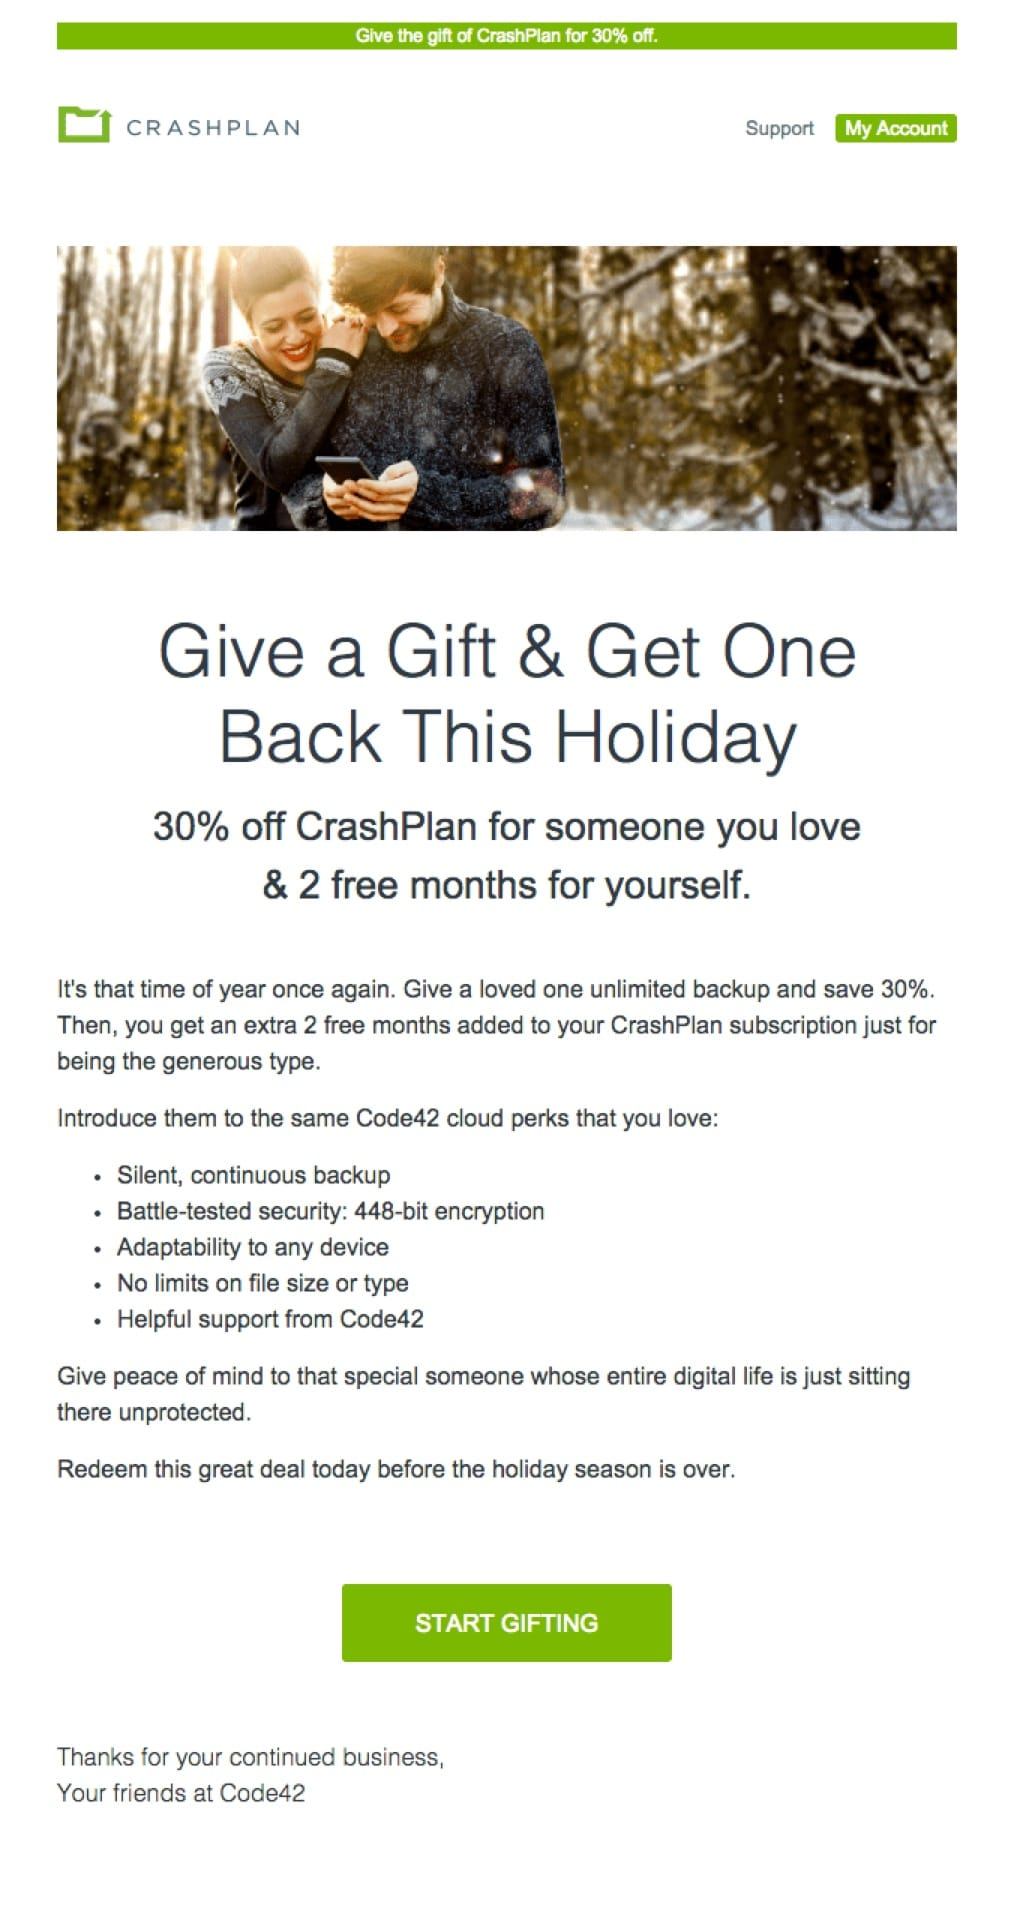 promotional email example crashplan (special offer)